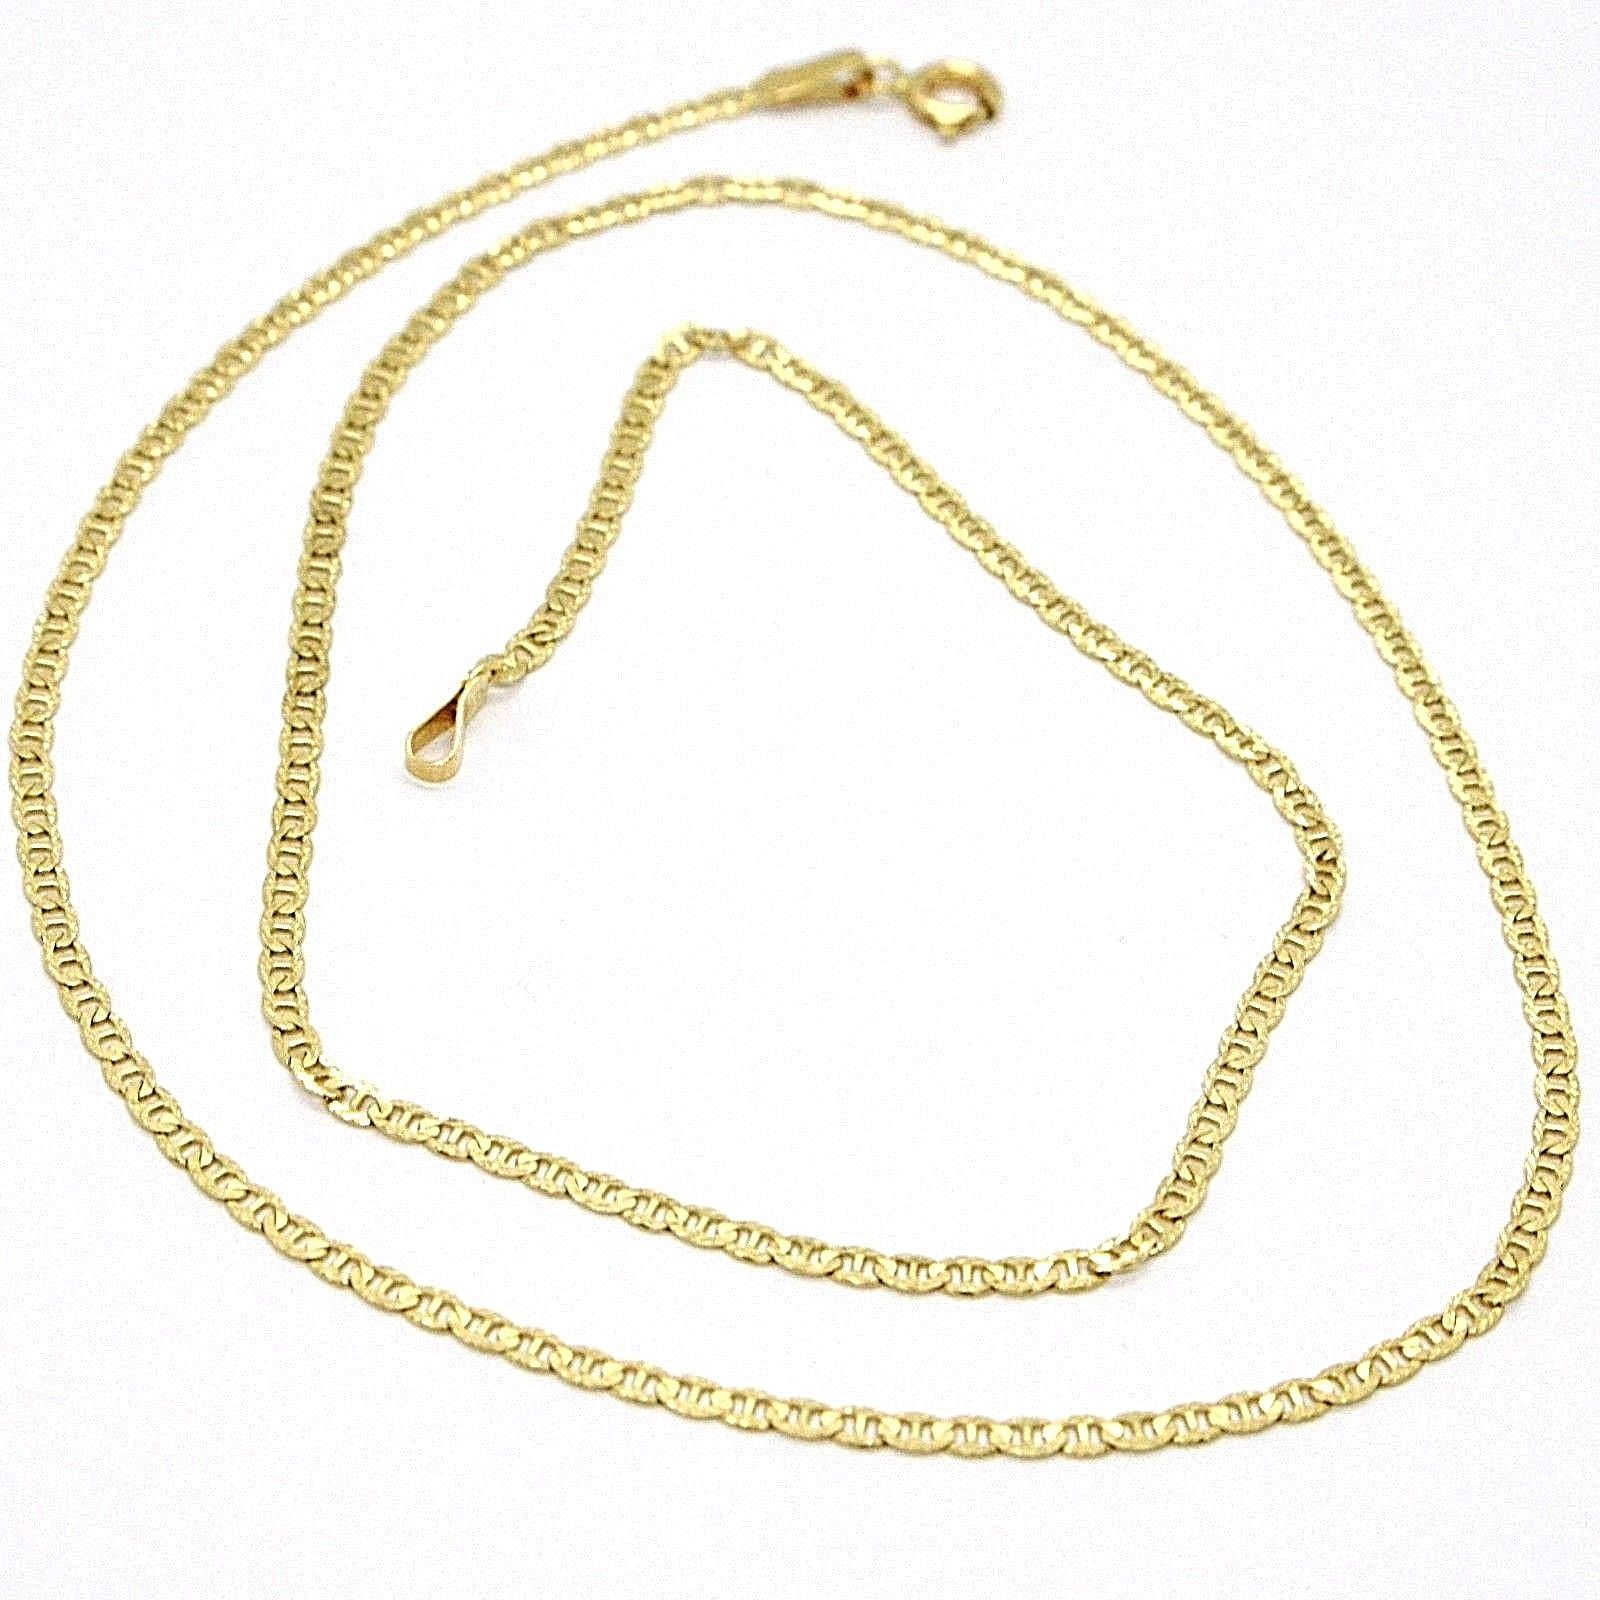 18K YELLOW GOLD CHAIN FLAT NAVY MARINER CROSSED WORKED LINK 2 MM, 18 INCHES